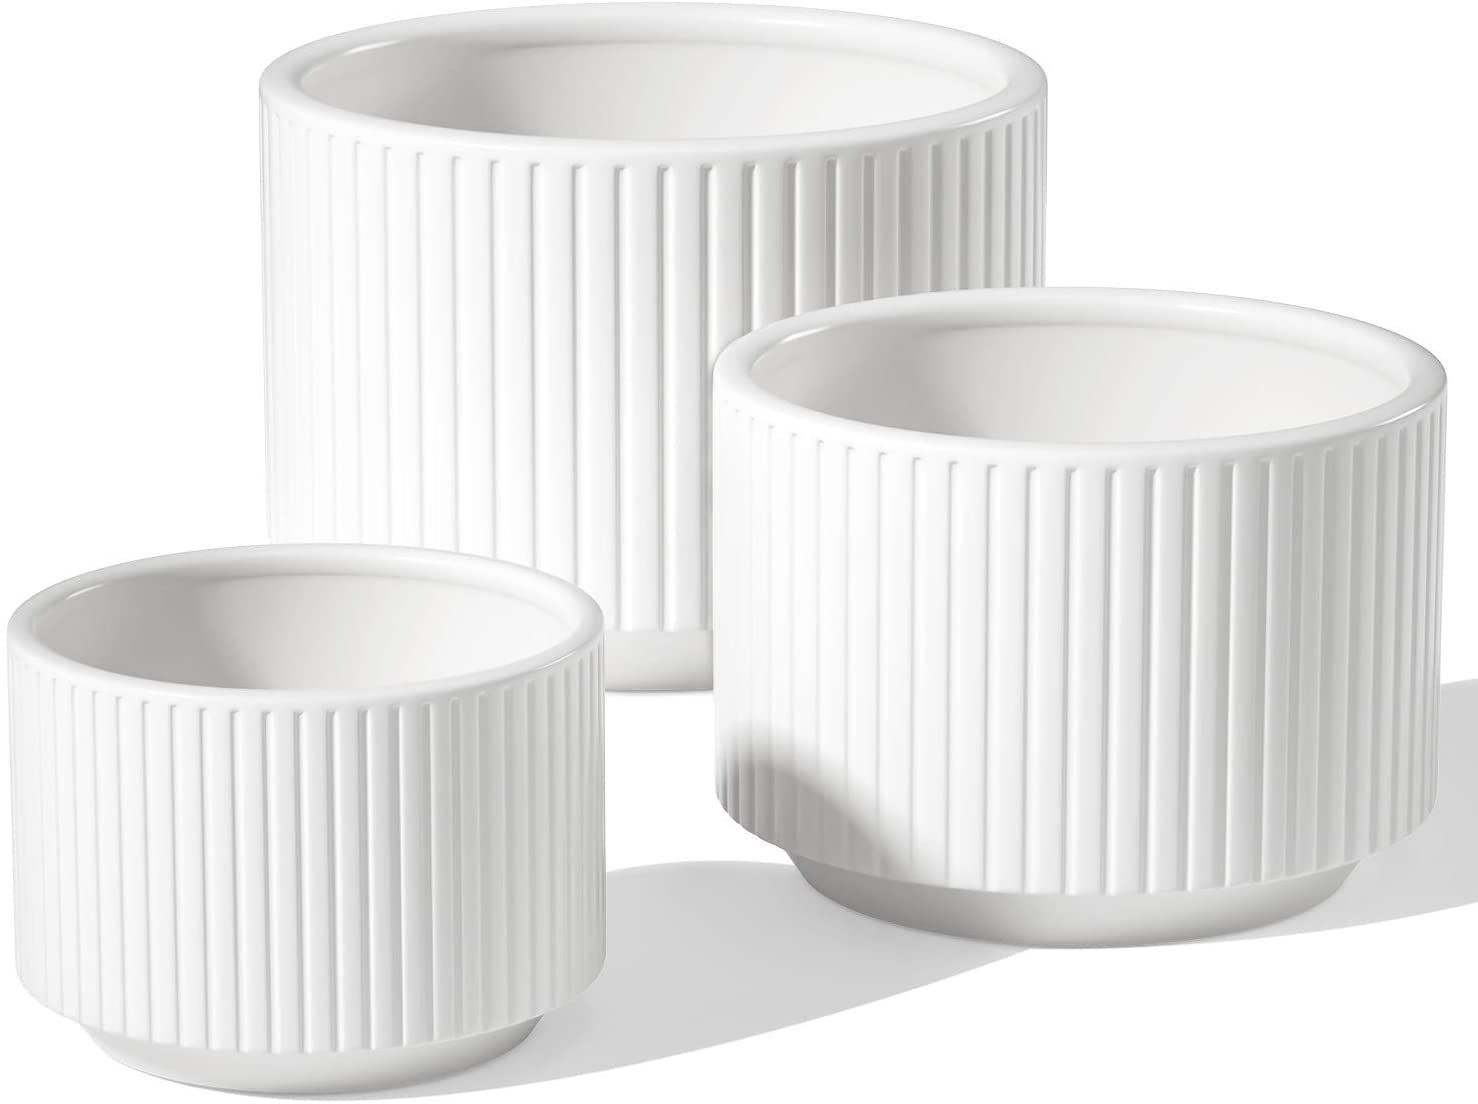 LE TAUCI Plant Pots, Large Planter Ceramic, 9.3+8+6.7 inch Pots for Plants with Drainage Holes, Garden Planters Outdoor, Indoor House Plants, Cylinder Modern Planter for Home, Set of 3, White